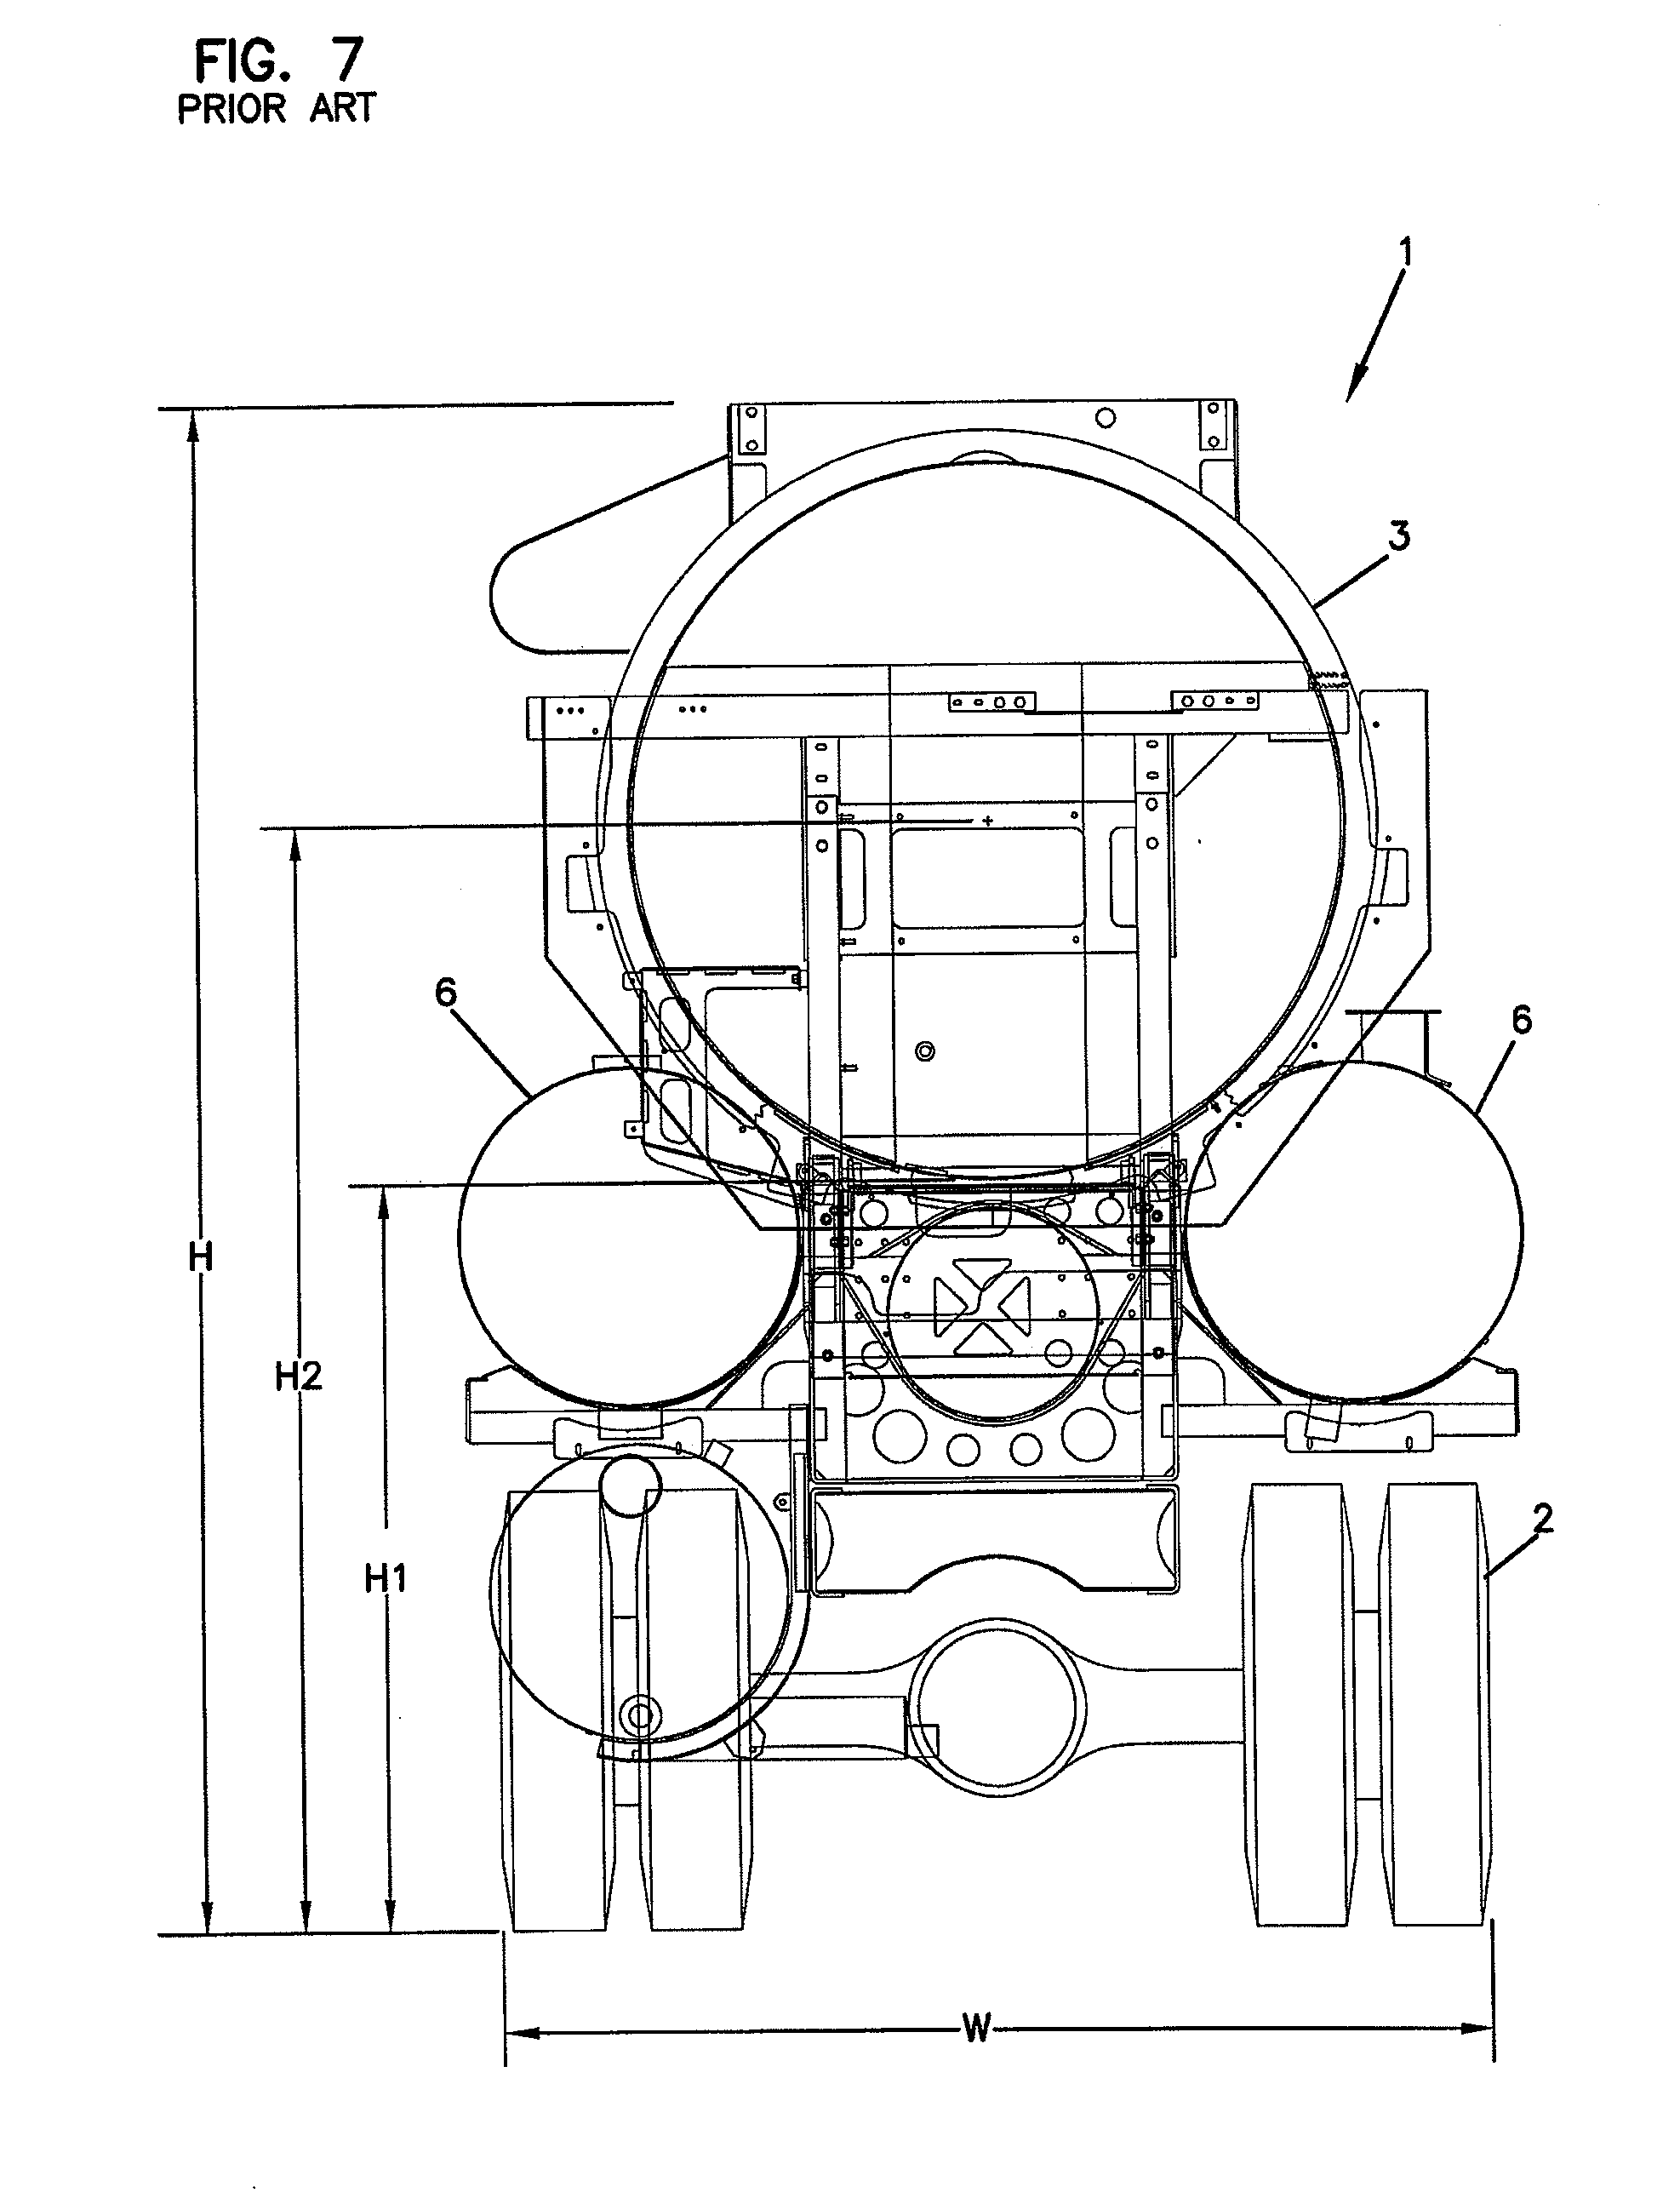 double schematic electrical wiring diagrams vactor wiring diagrams